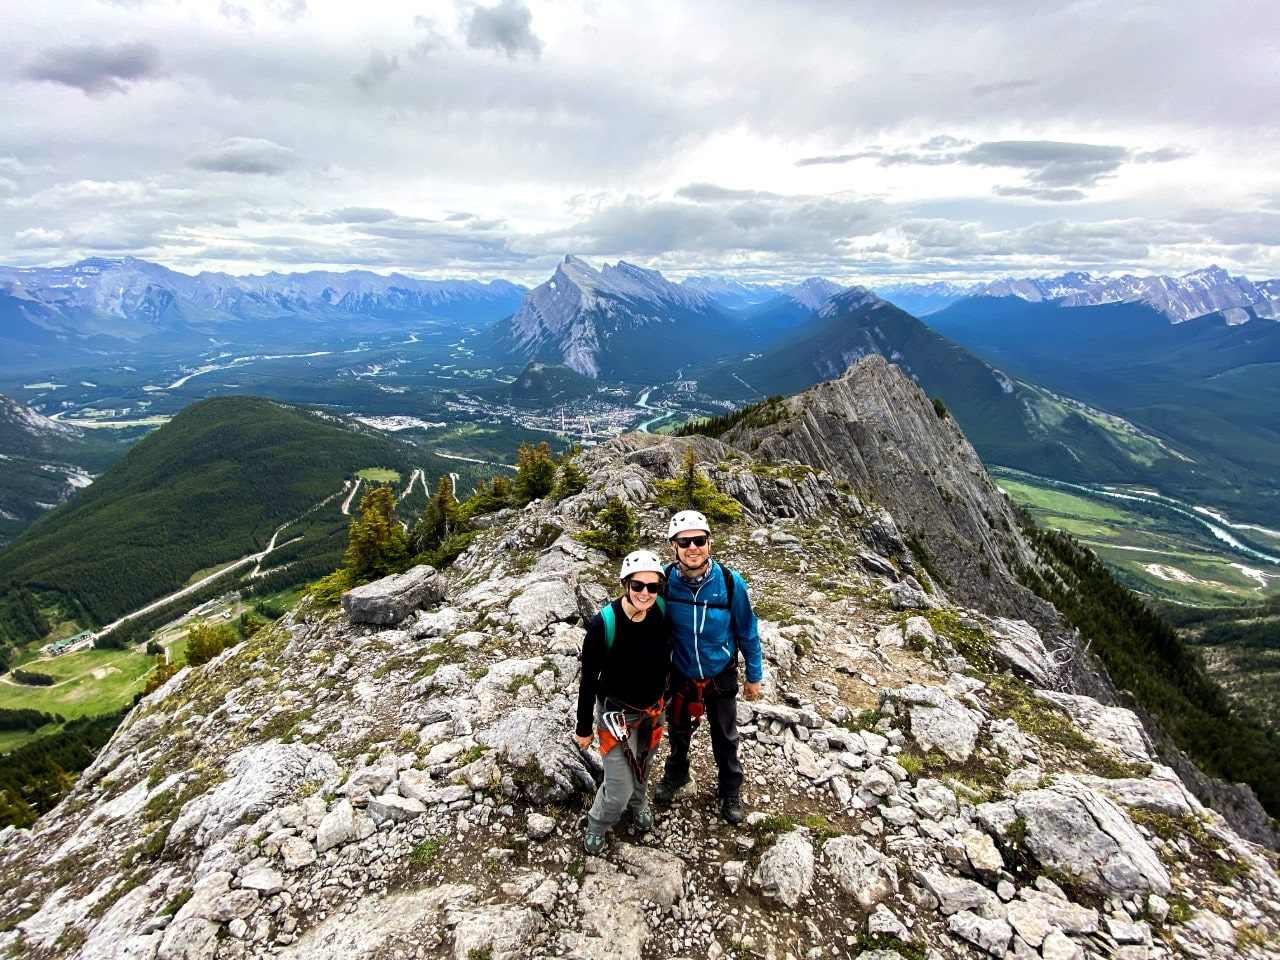 JR and Gemma together at the top of the Skyline Via Ferrata route on Mt Norquay, Banff